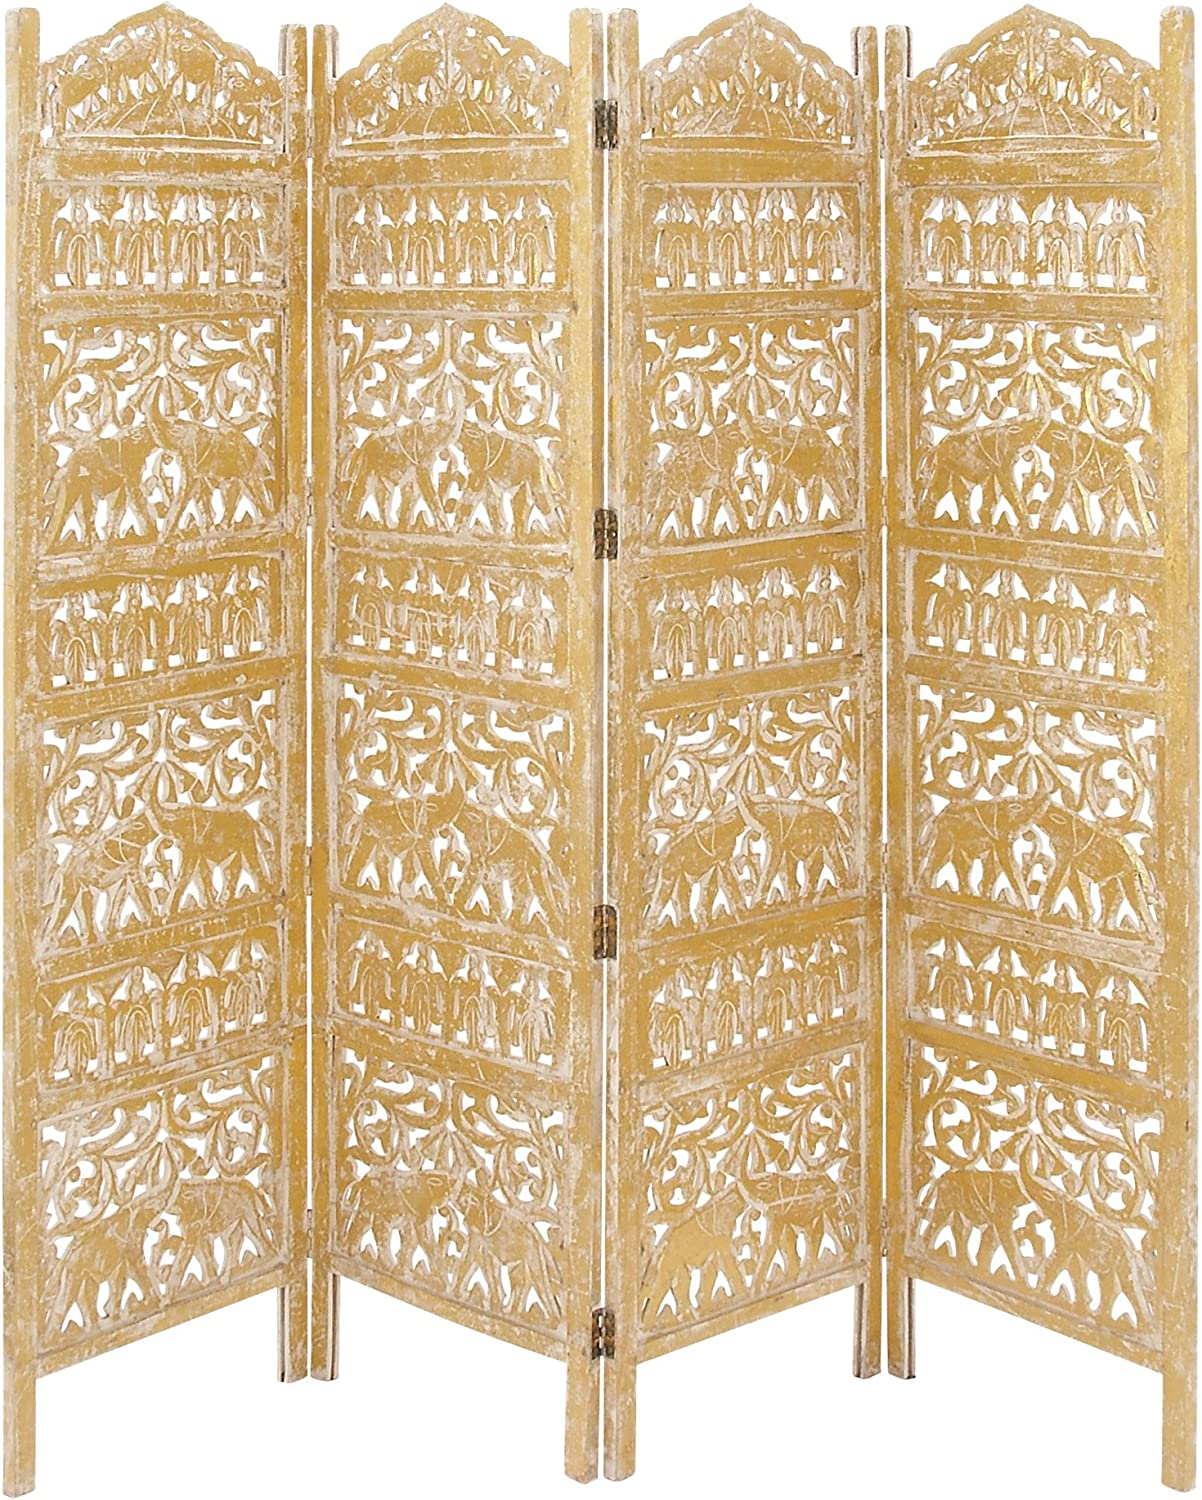 """Deco 79 Traditional Carved Wood 4-Panel Room Divider, 72"""" H x 80"""" L, Weathered Gold Finish"""